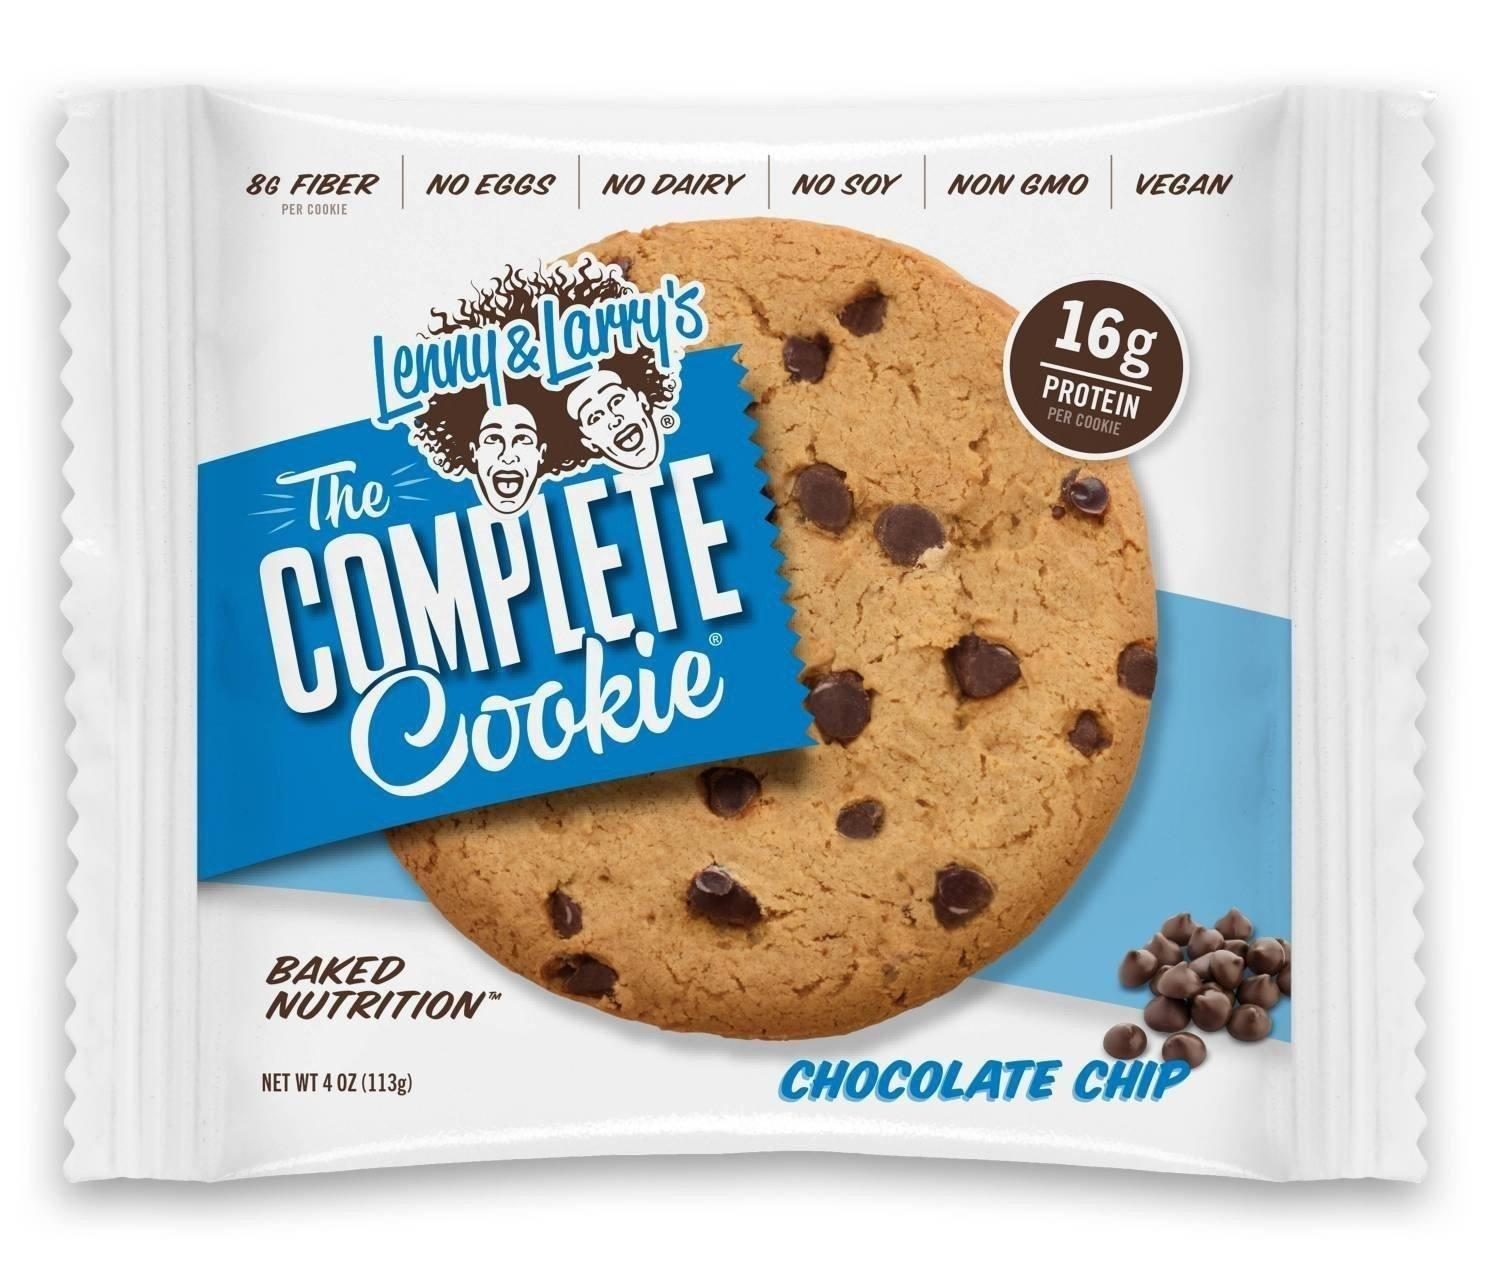 14 Vegan Cookie Brands For Guilt-free Snacking